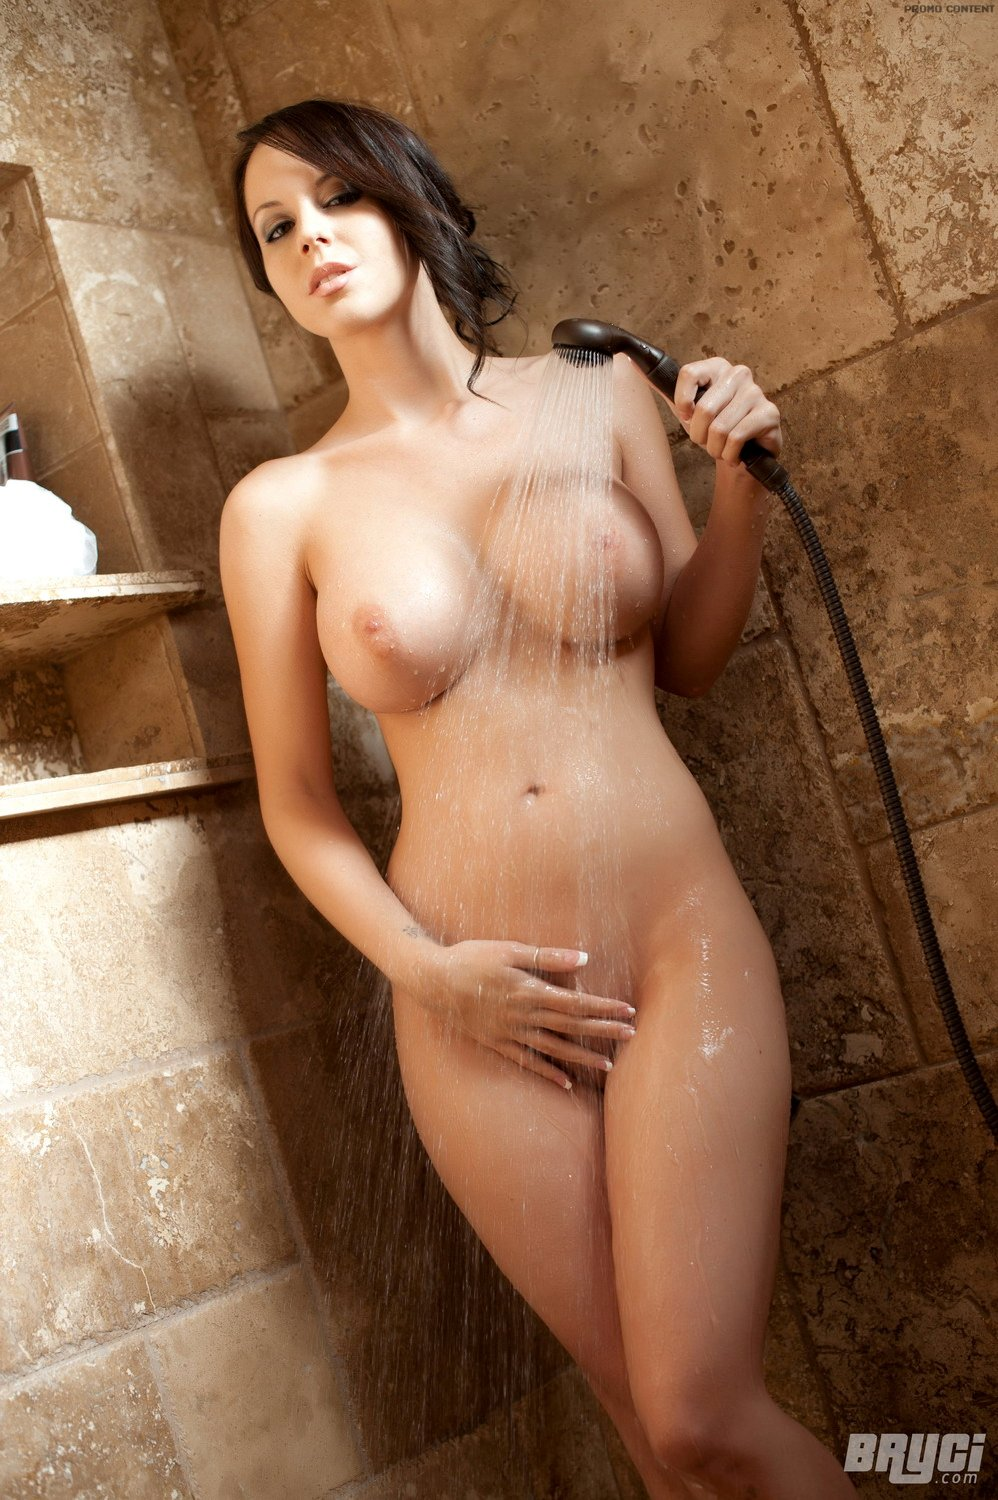 Nude shower bryci